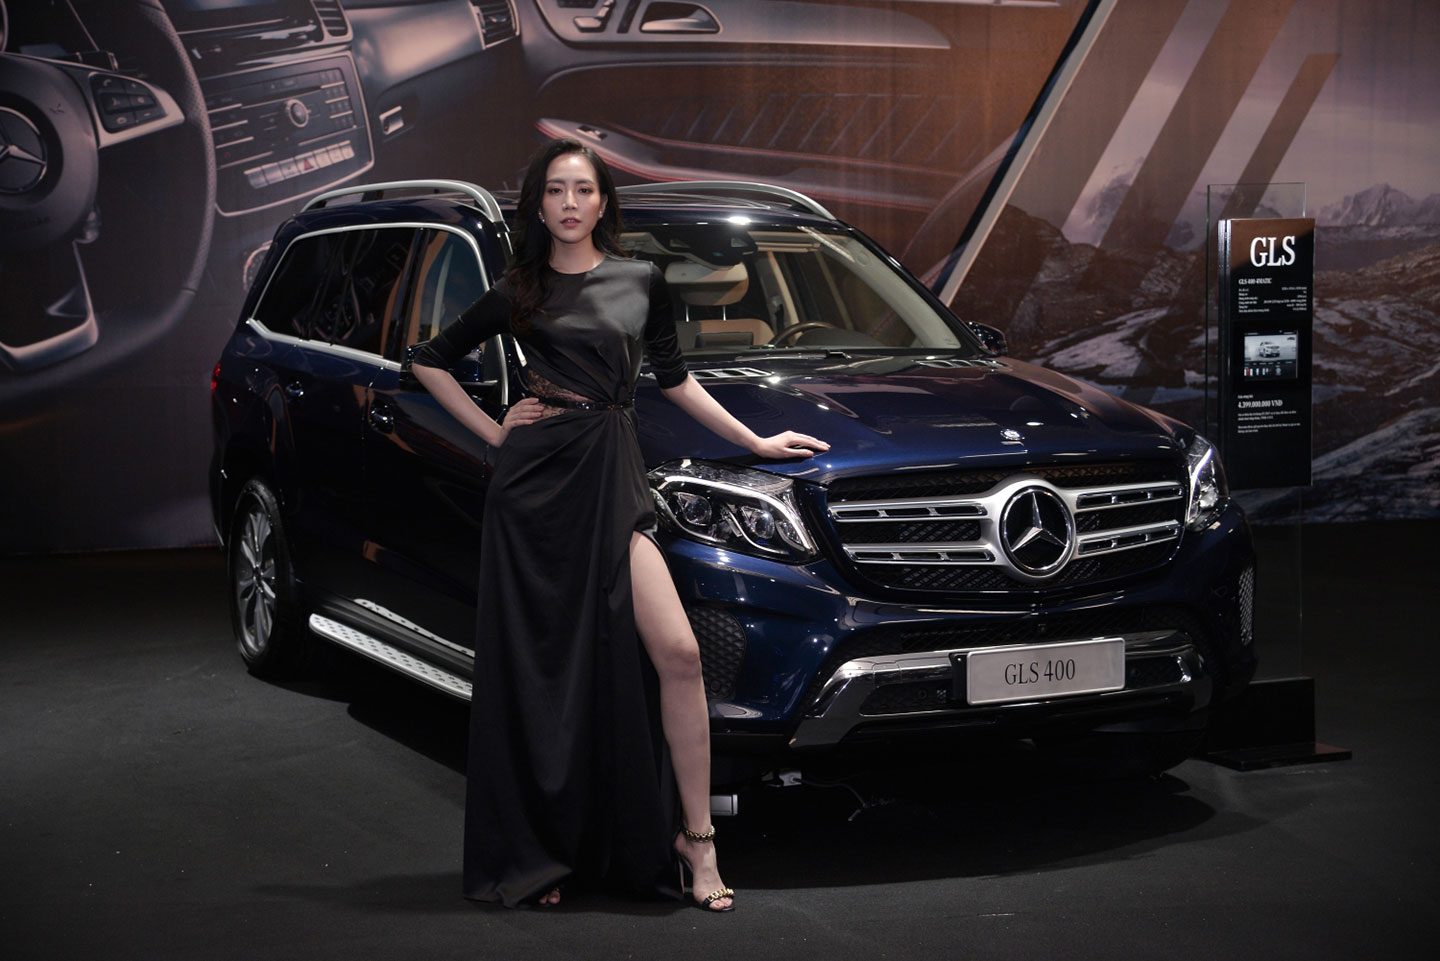 mercedes-benz-fascination-2017-nguoidep-10.jpg